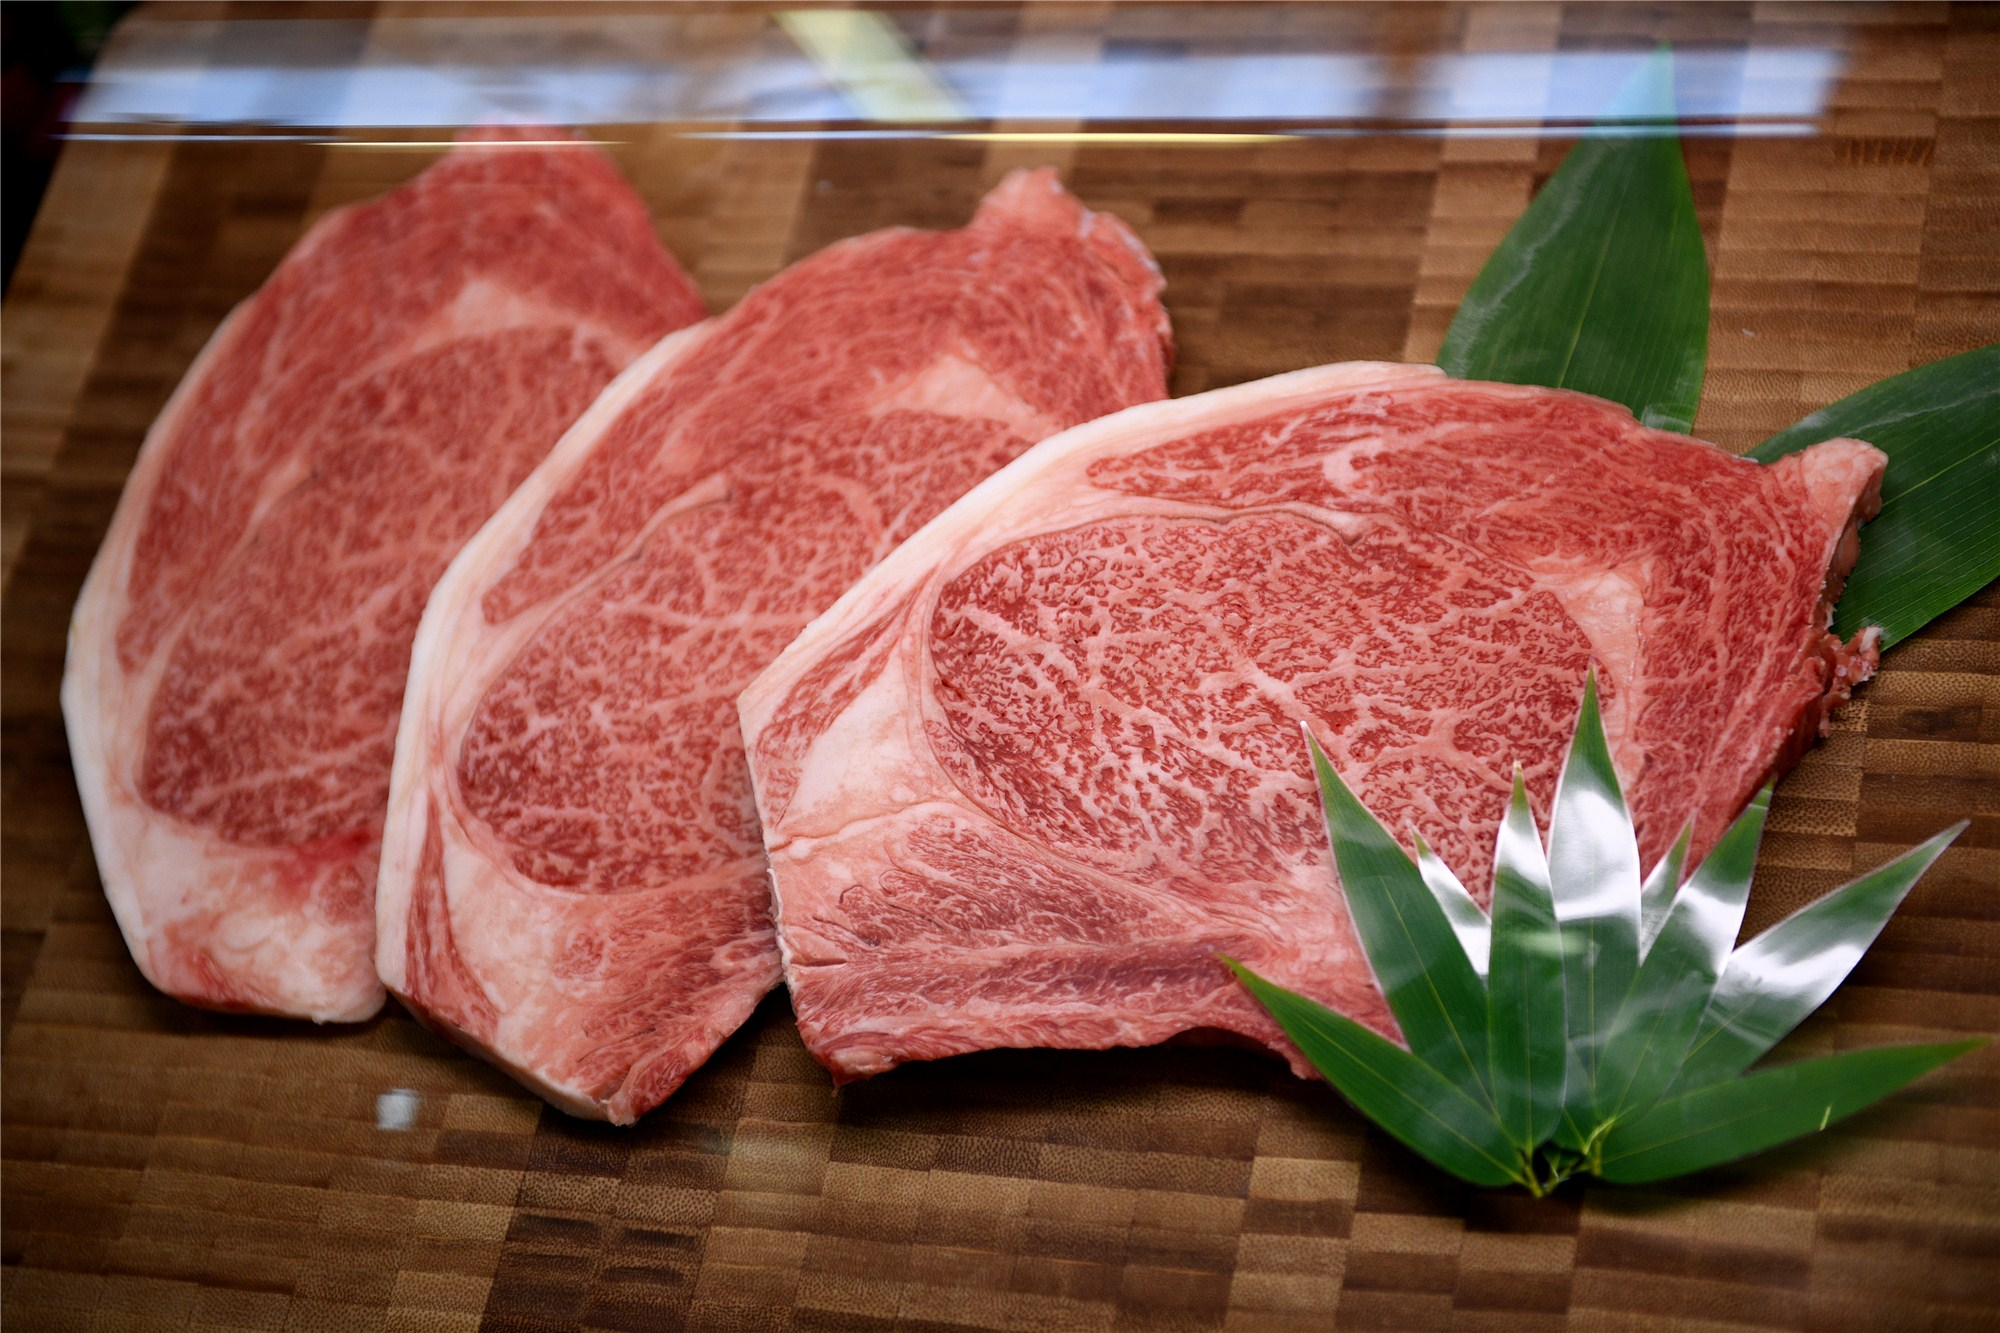 China lifts import ban on certain Japanese beef